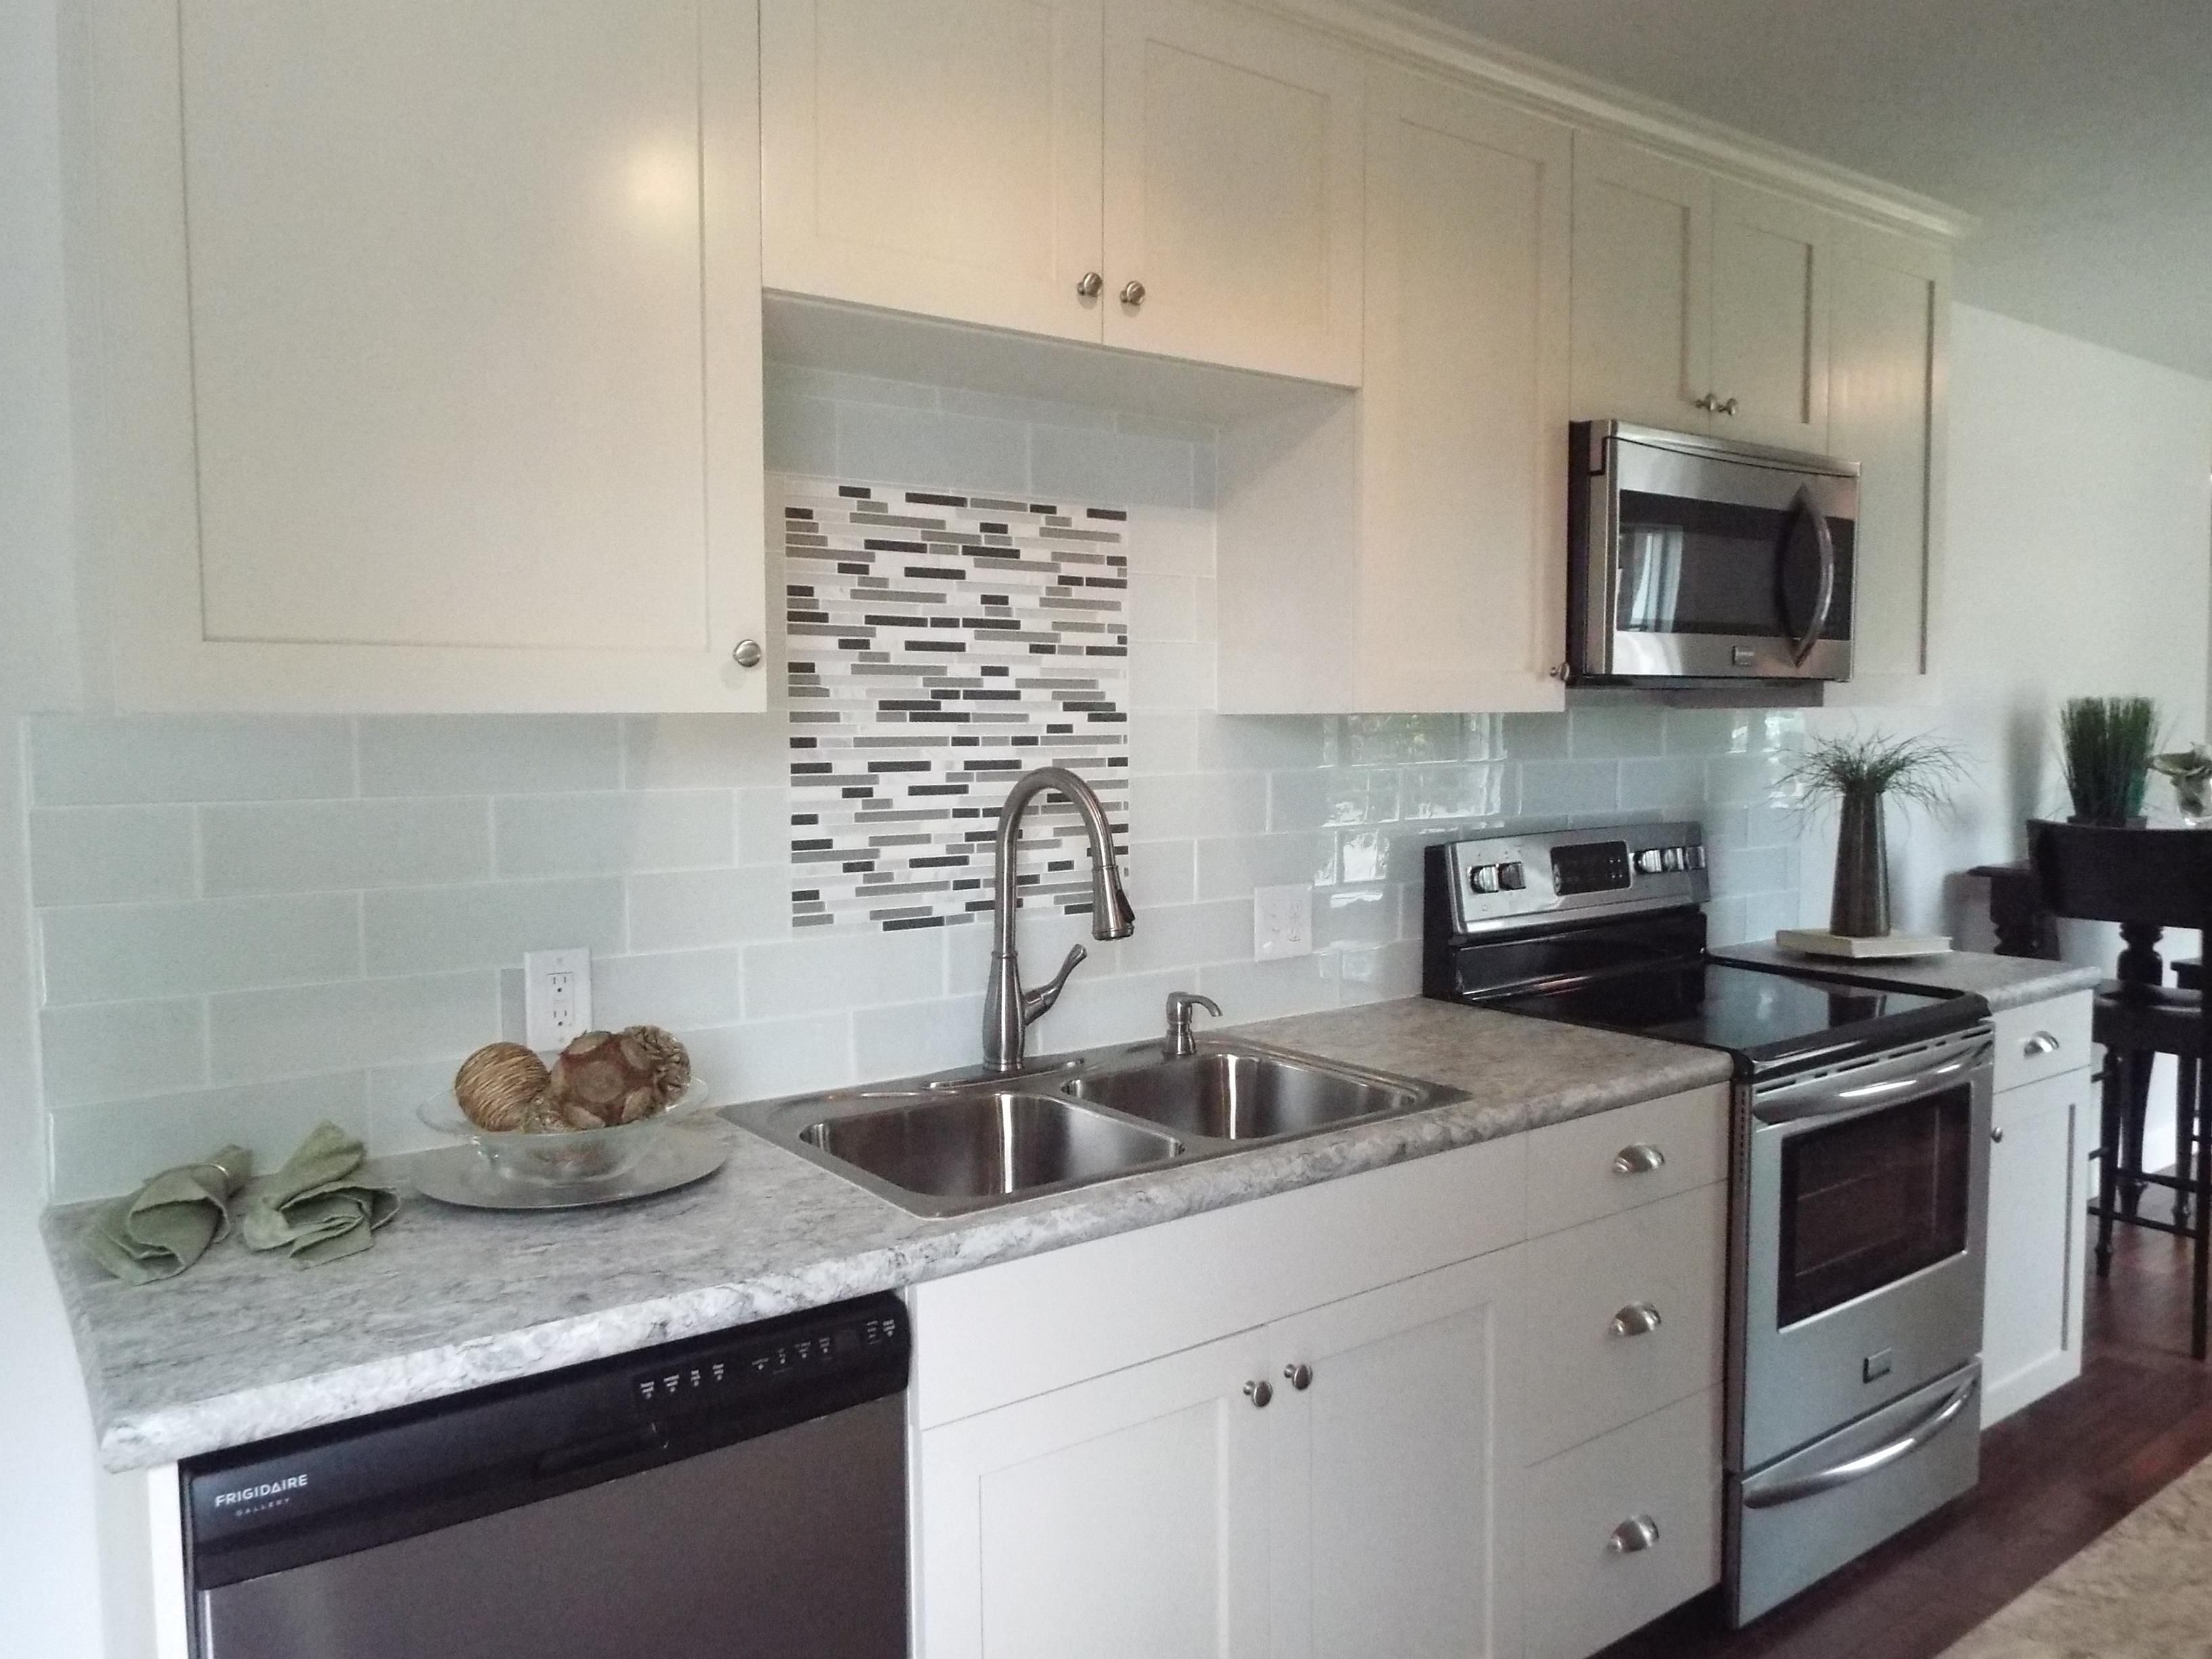 Southeast Boise Homes For Sale - Kitchen remodel, Home, Home remodeling, Glass tile backsplash, Kitchen, Galley kitchen - Southeast Boise Homes For Sale  Boise, Idaho Real Estate  The Most Comprehensive Home Search  Find All Homes for Sale in Boise